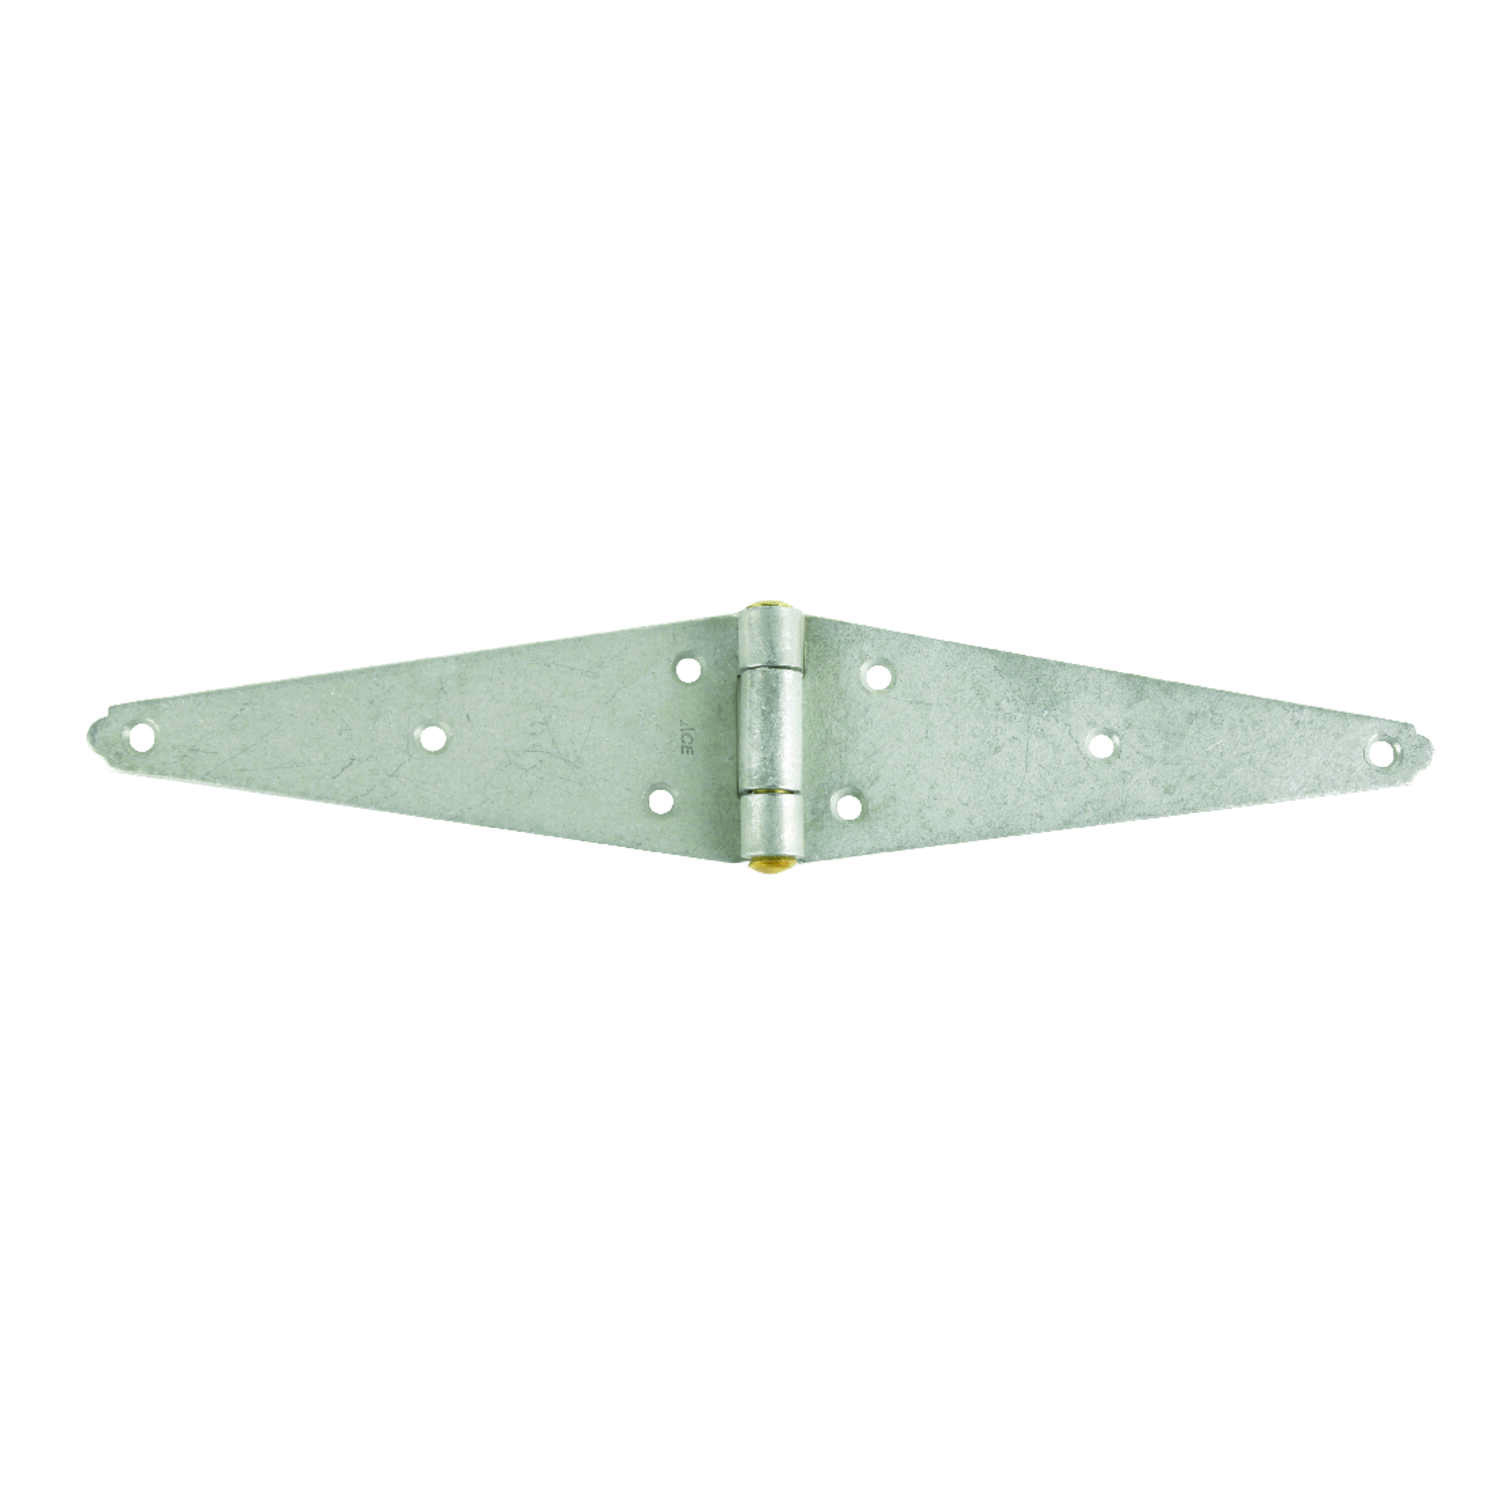 Ace  8 in. L Galvanized  Heavy Duty Strap Hinge  1 pk